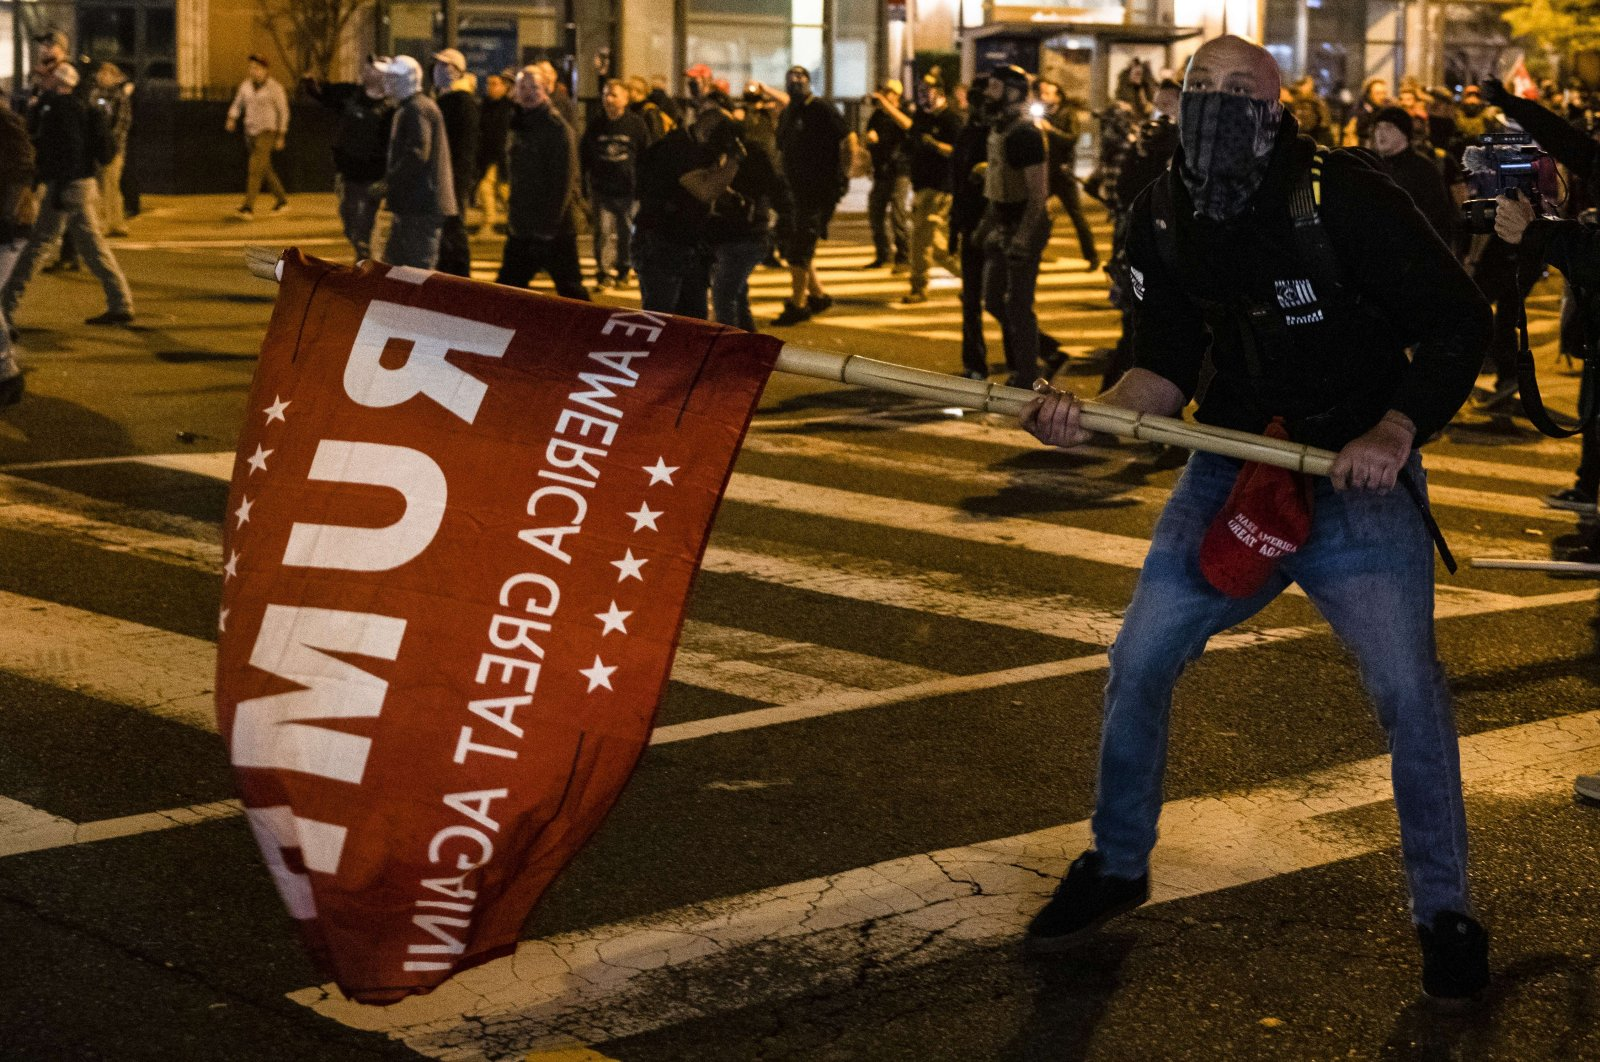 """Members of Antifa and Proud Boys clash in the middle of the street following the """"Million MAGA March"""" in Washington, DC, on Nov. 14, 2020. (AFP Photo)"""